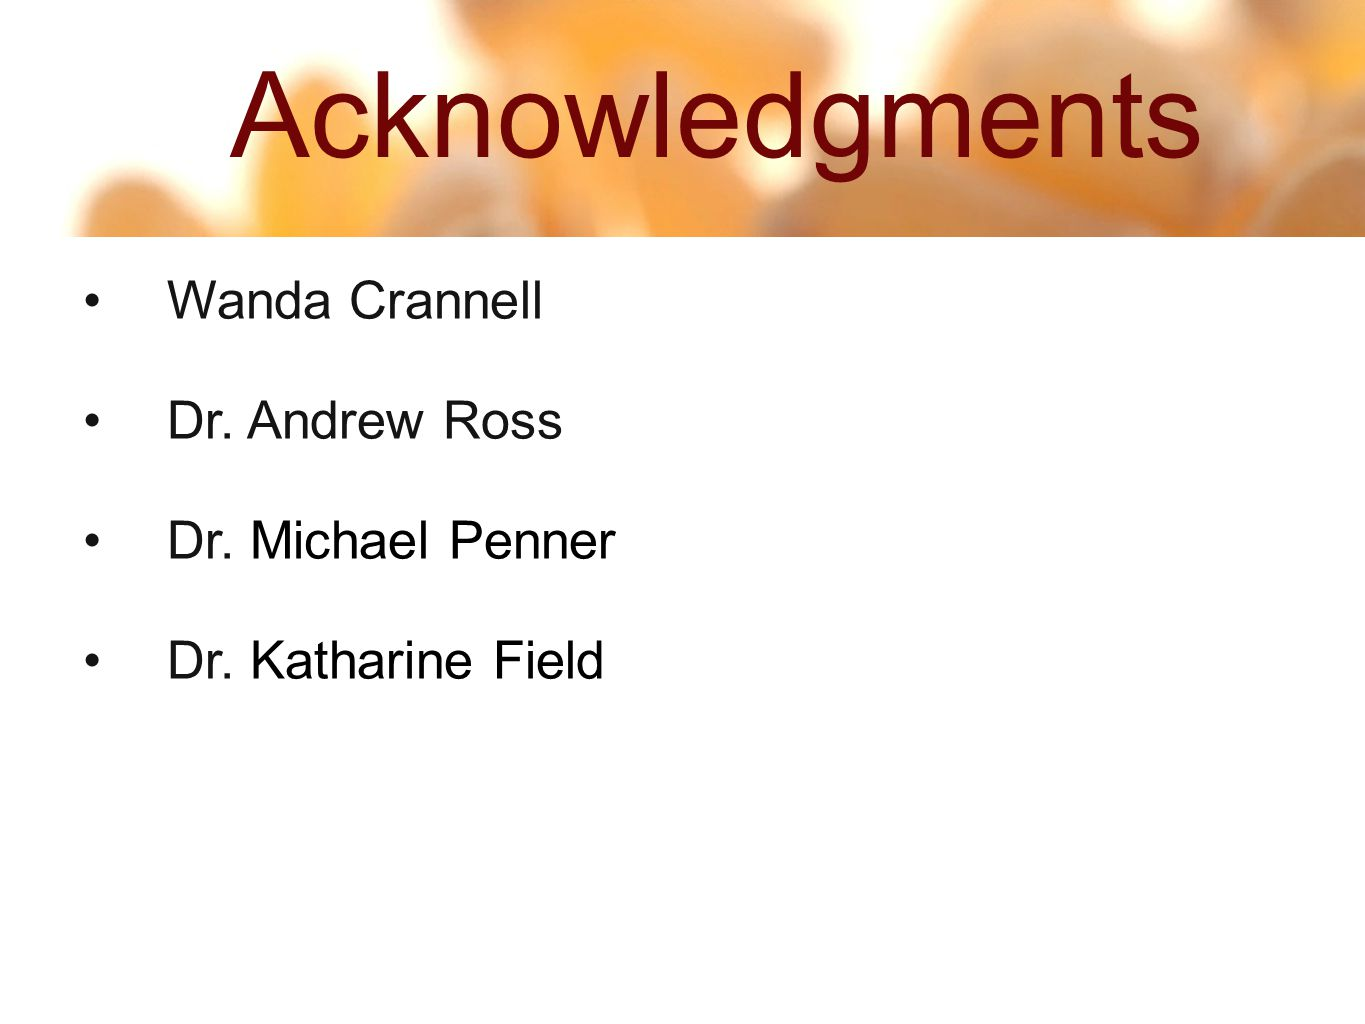 16 59 Acknowledgments Wanda Crannell Dr. Andrew Ross Dr. Michael Penner Dr. Katharine Field